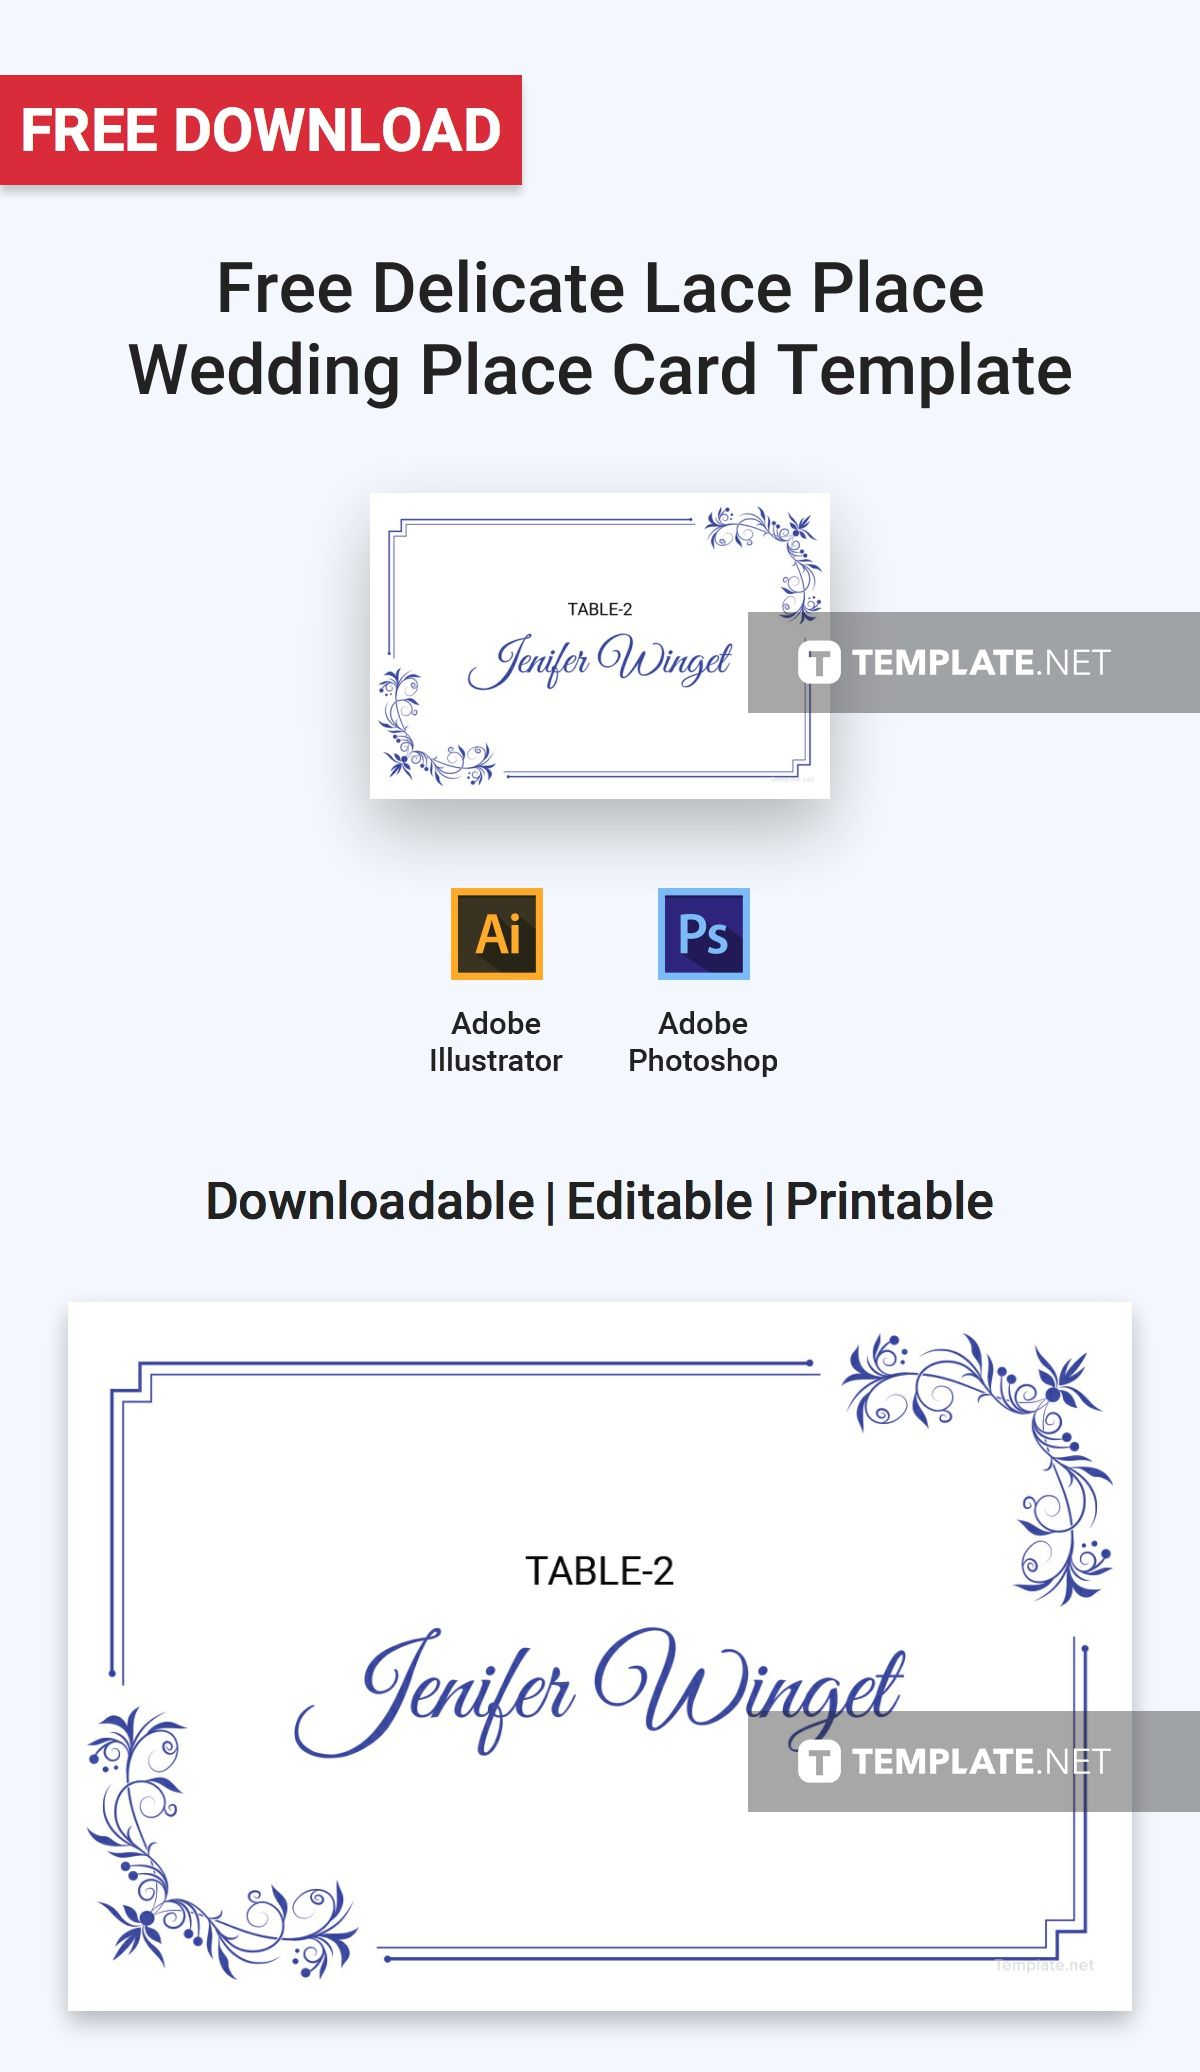 Free Delicate Lace Place Wedding Place Card Template Illustrator Word Apple Pages Psd Publisher Template Net Place Card Template Wedding Place Card Templates Place Card Template Word